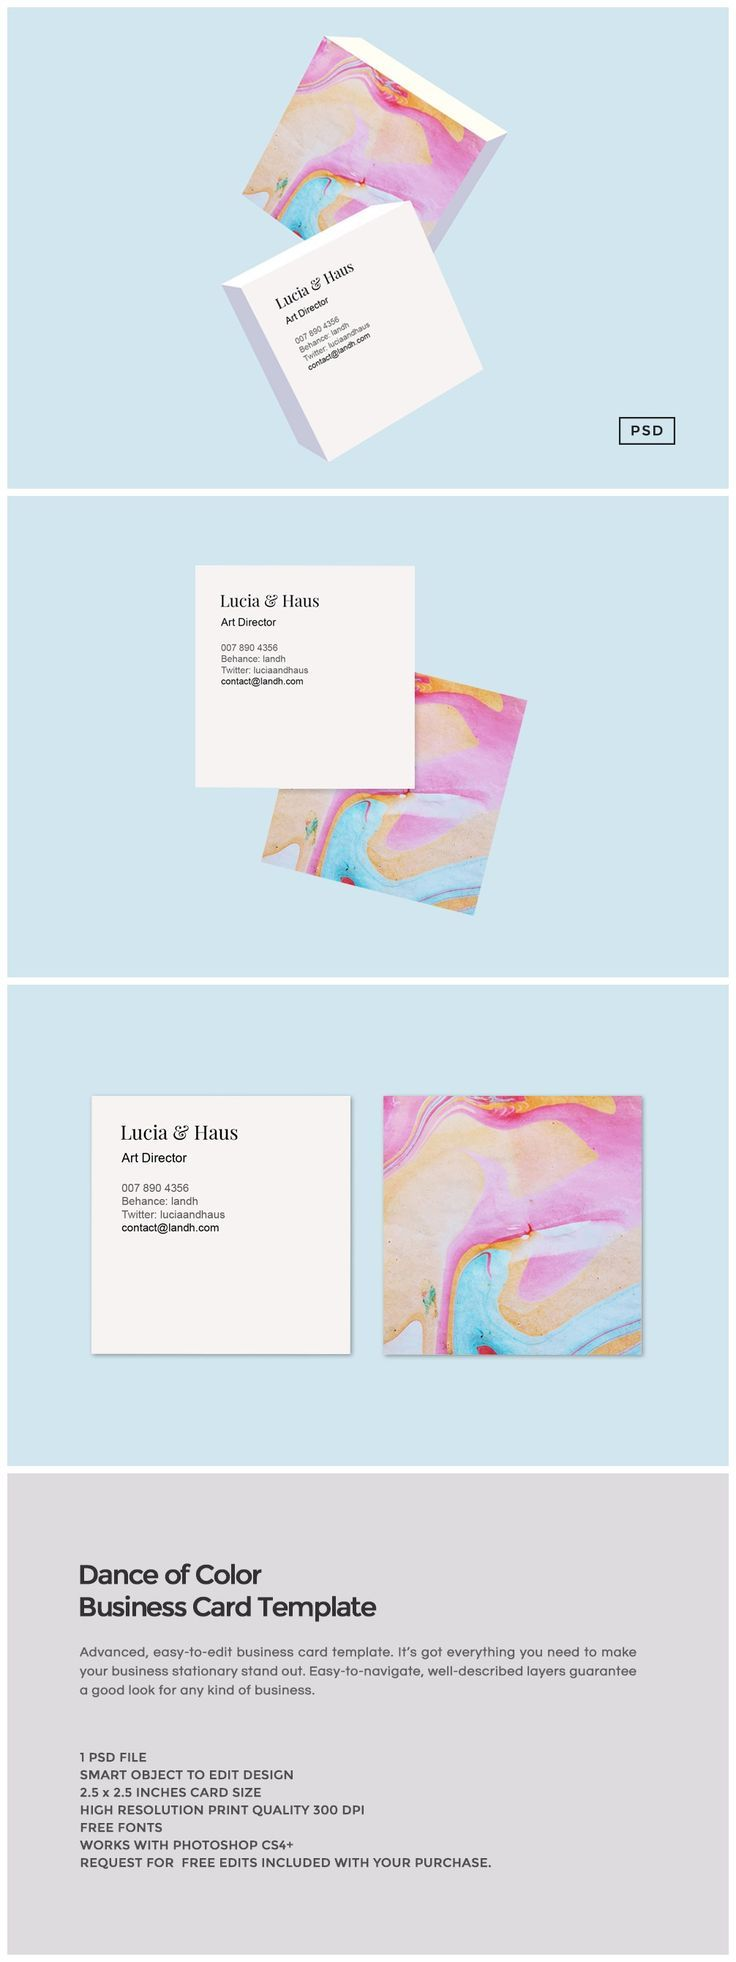 351 best business card templates images on pinterest business card dance of color business card flashek Gallery